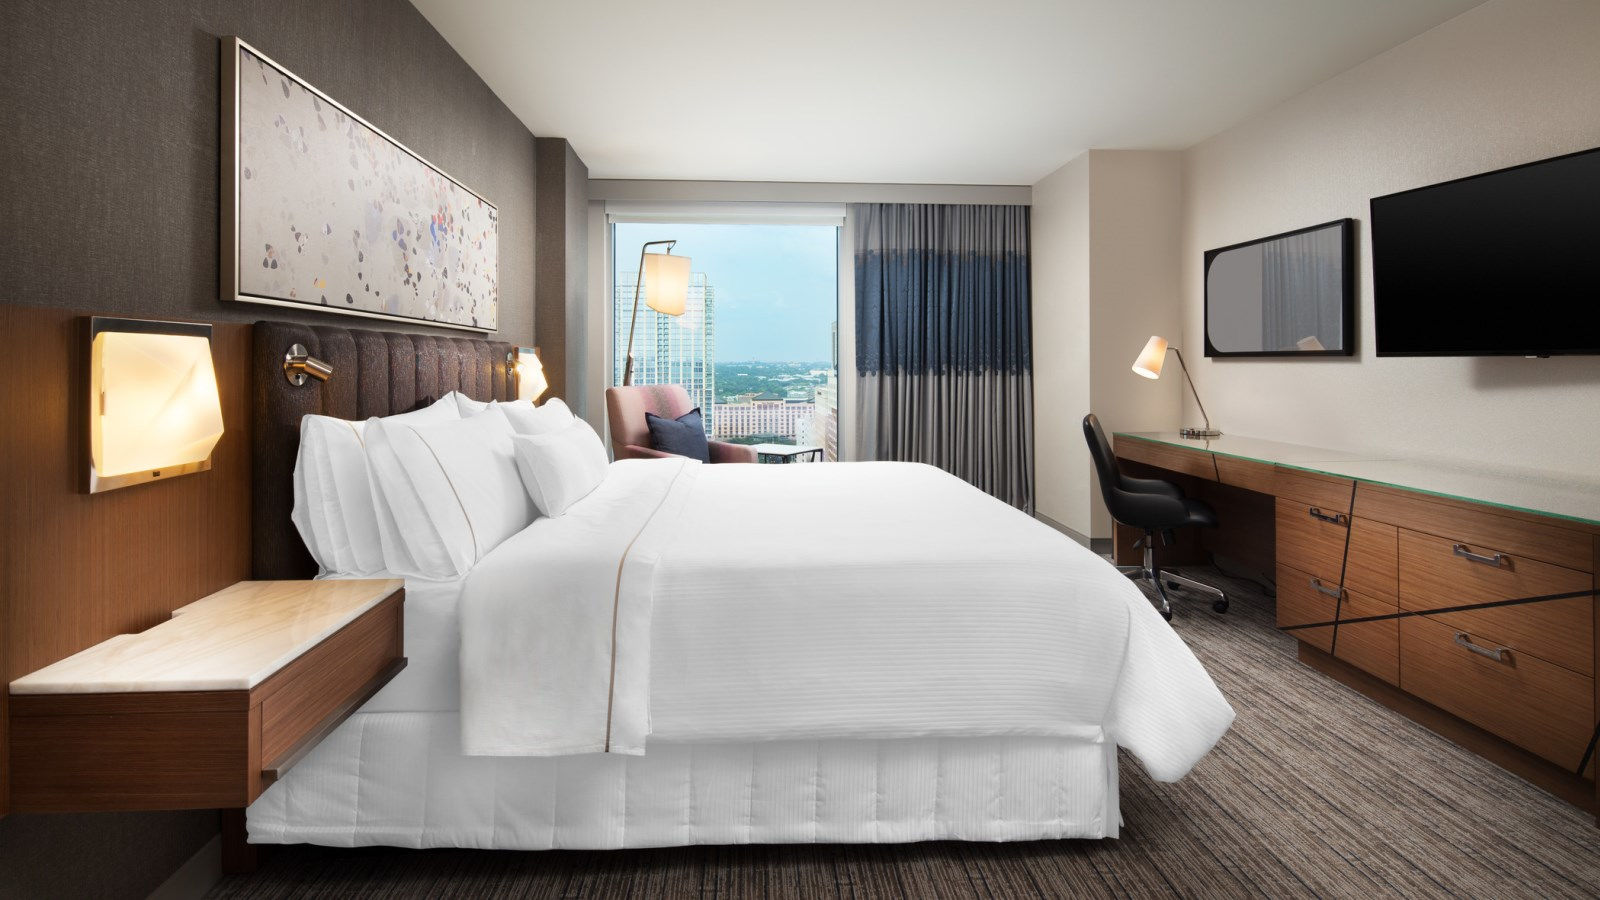 luxury hotels austin - executive view room